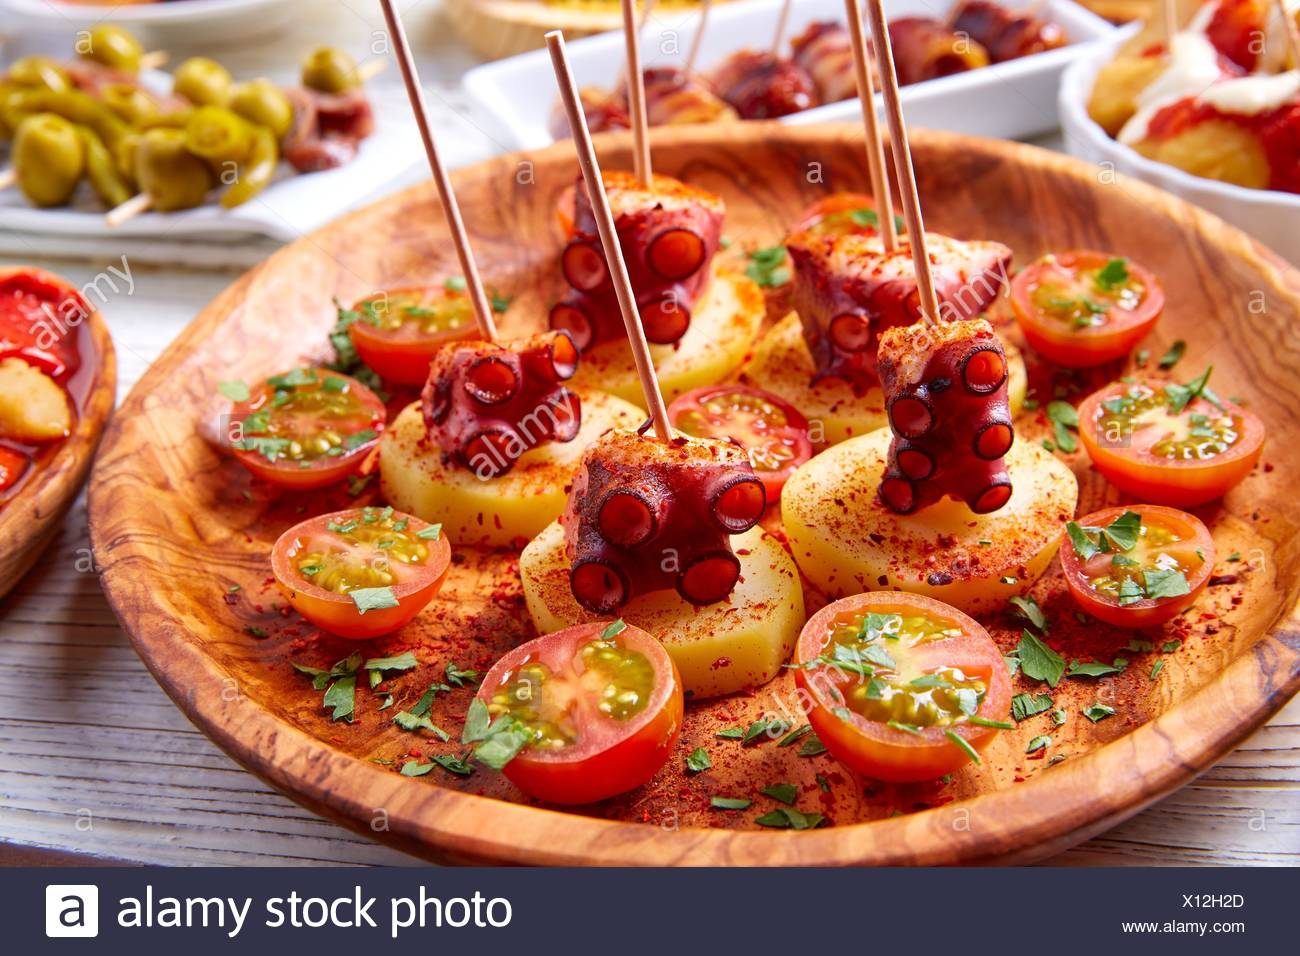 Galician Octopus a la Gallega tapas pinchos recipe from Spain with potatoes. - Stock Image